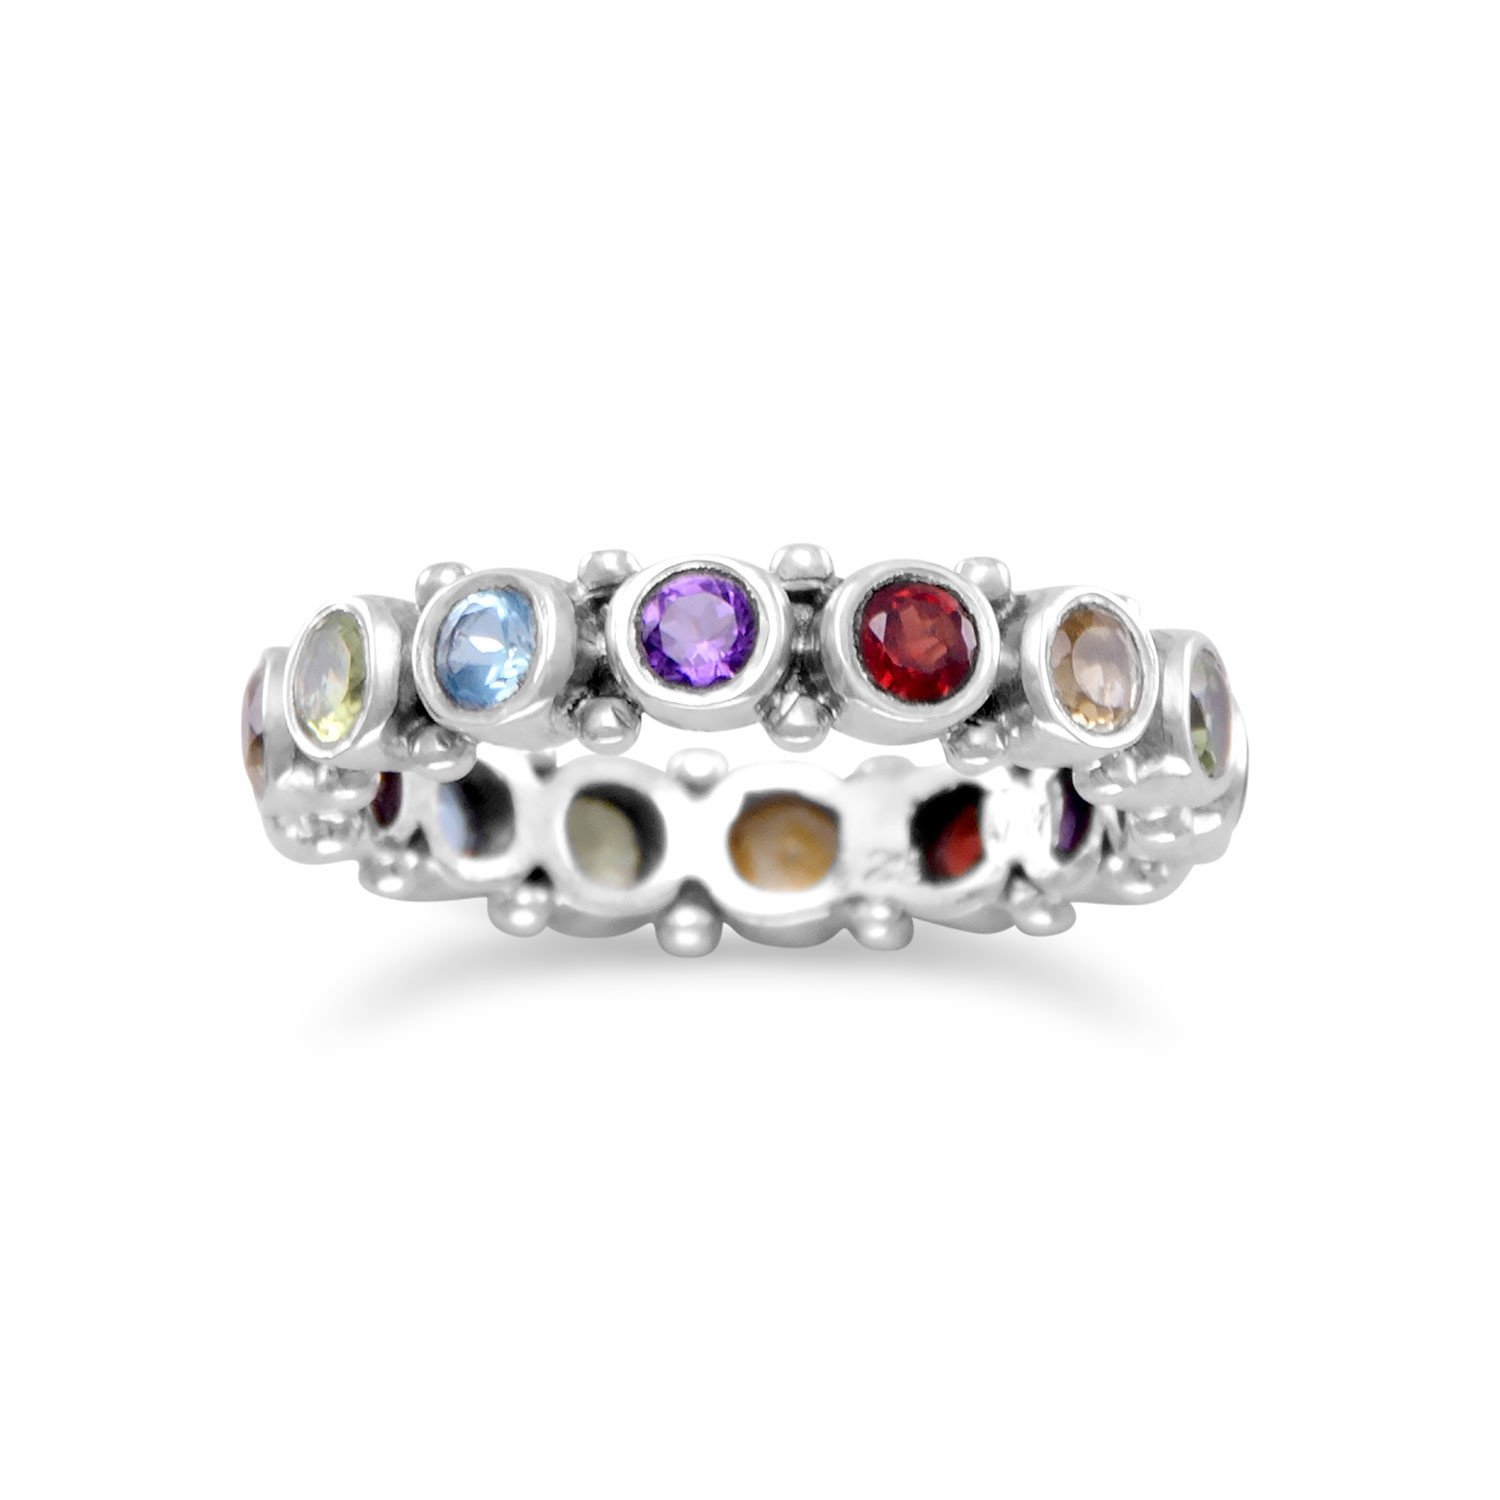 Eternity Band Ring with Amethyst, Blue Topaz, Citrine, Garnet, Peridot, Silver by unknown